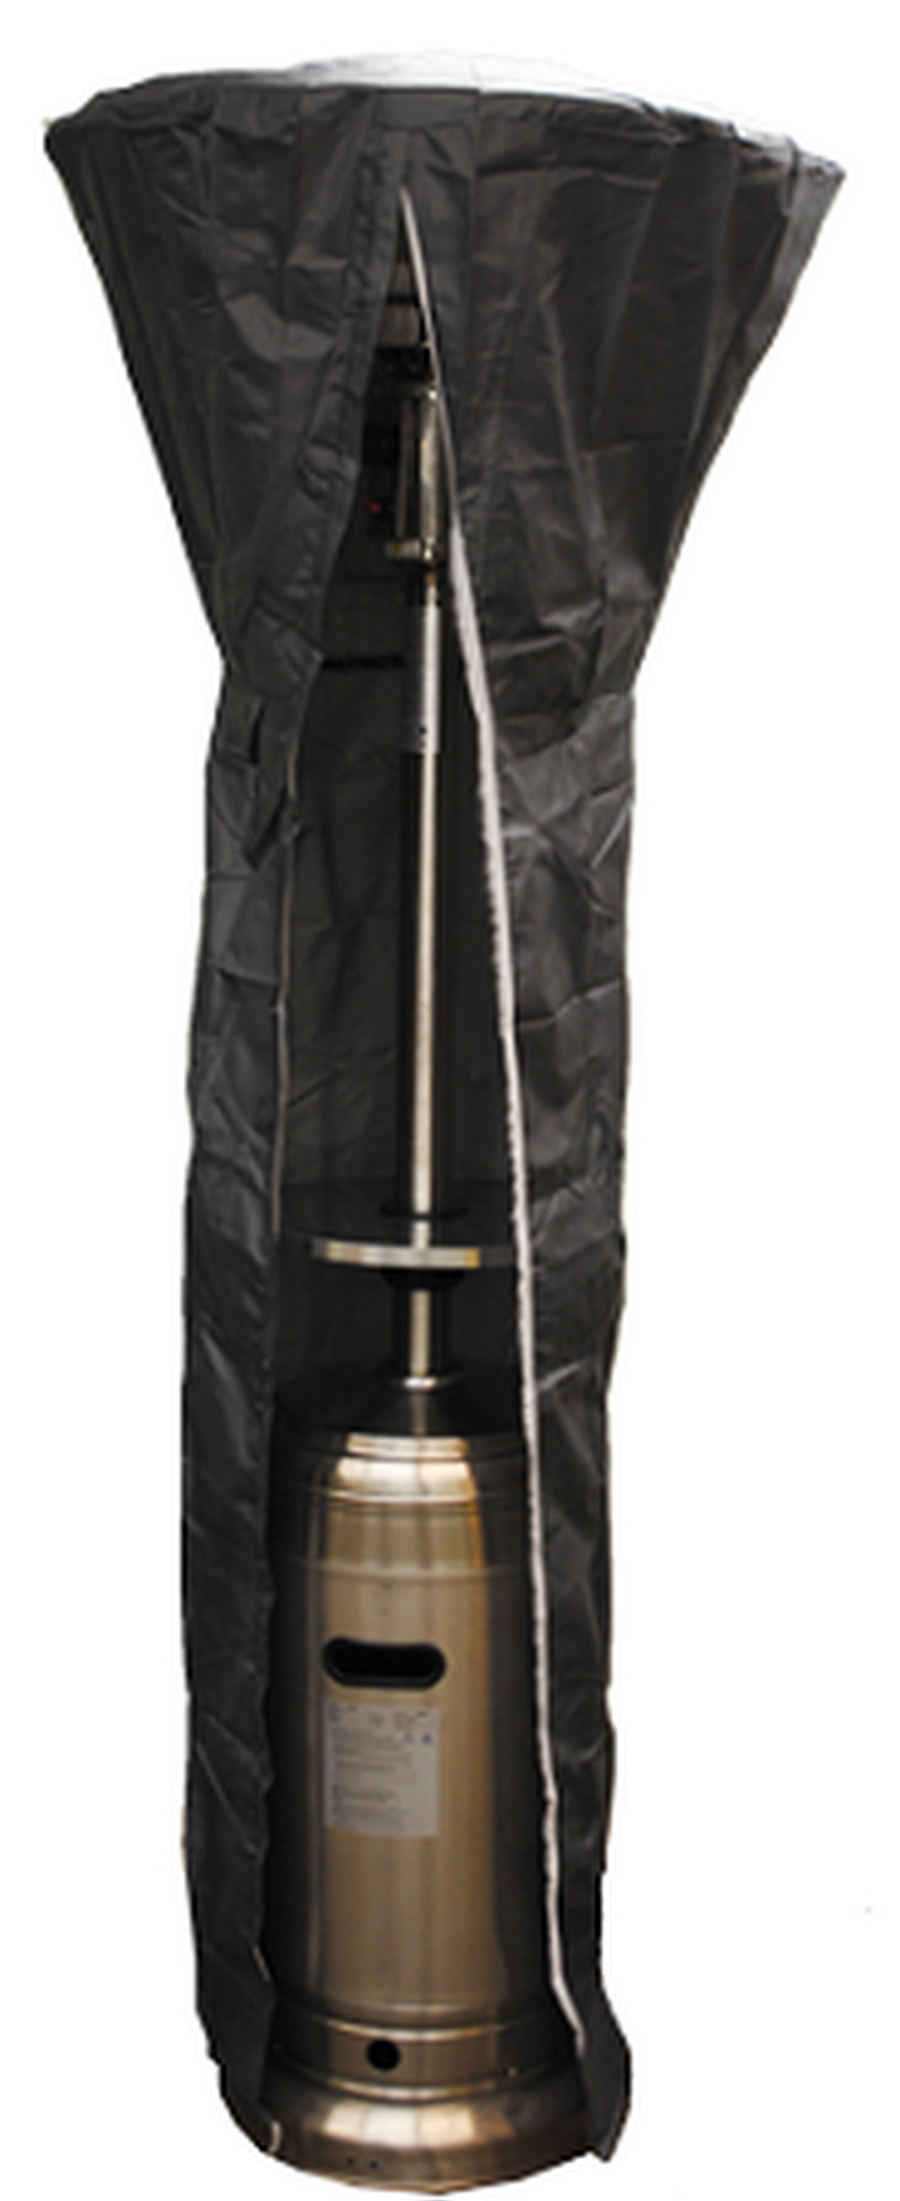 Sunheat Patio Heater Cover - Biege or Black